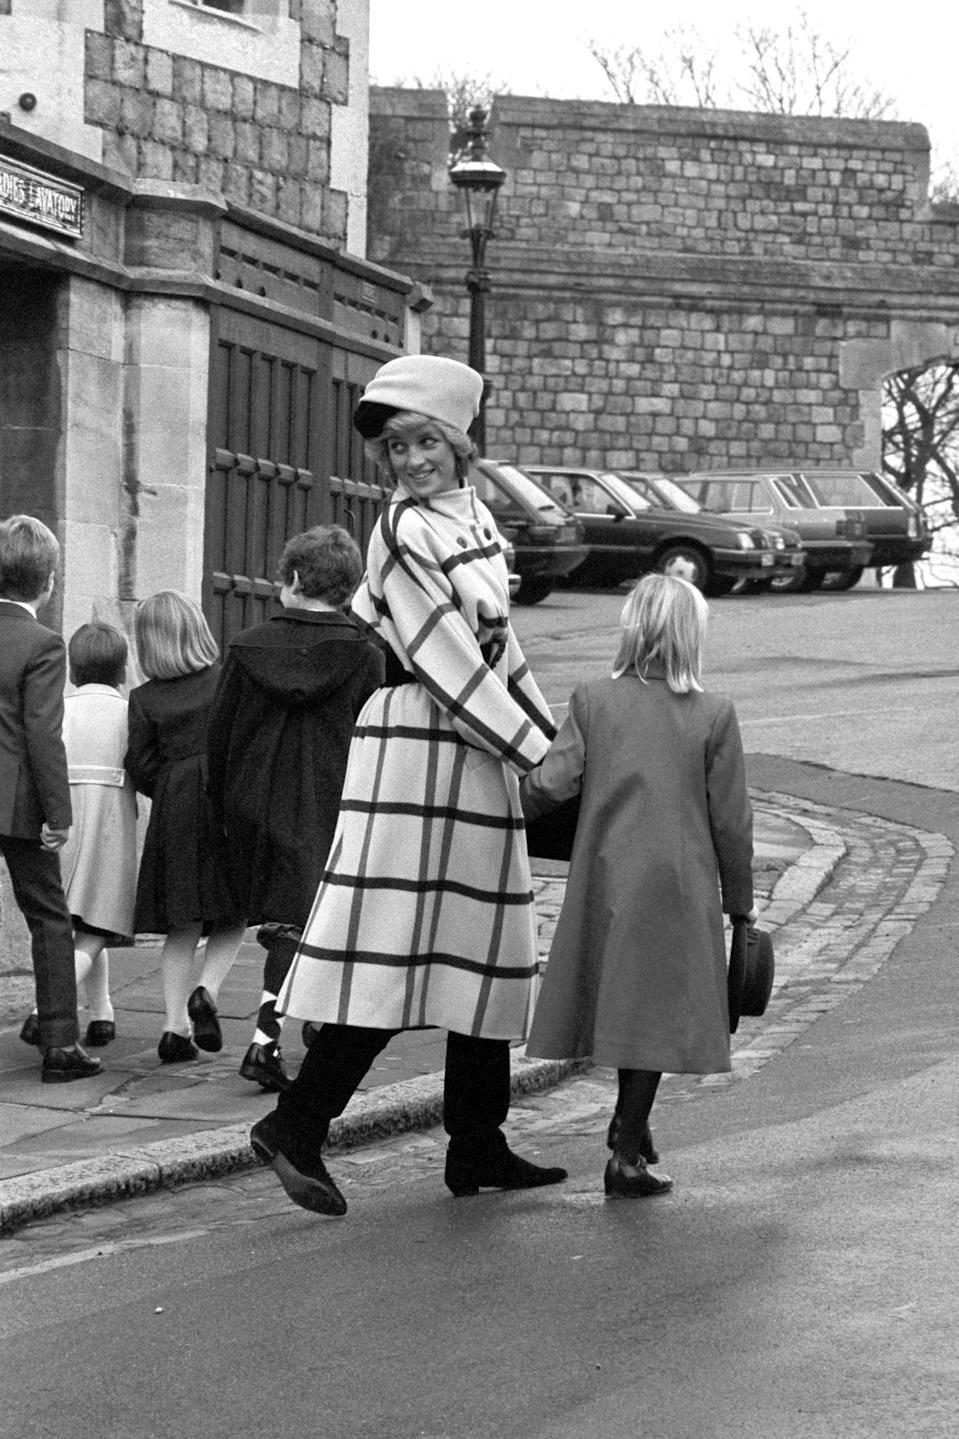 The Princess of Wales escorts the royal youngsters after attending the Christmas Day service at St George's Chapel, Windsor. (PA Images)